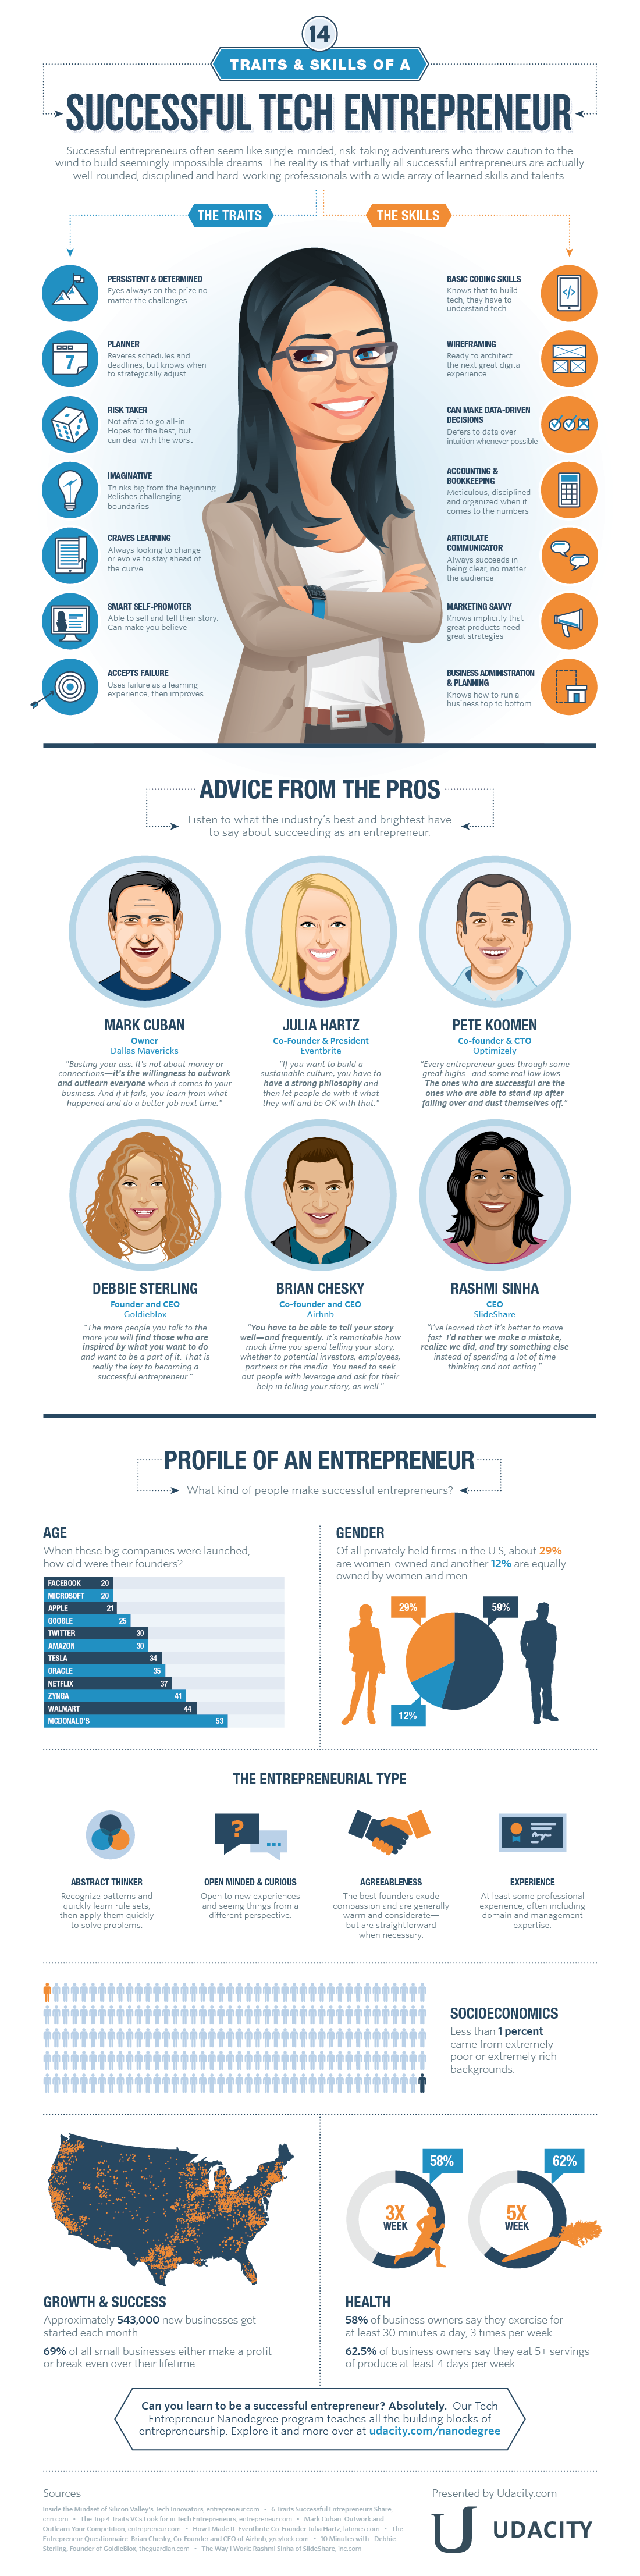 Traits & Skills of a Tech Entrepreneur #Infographic